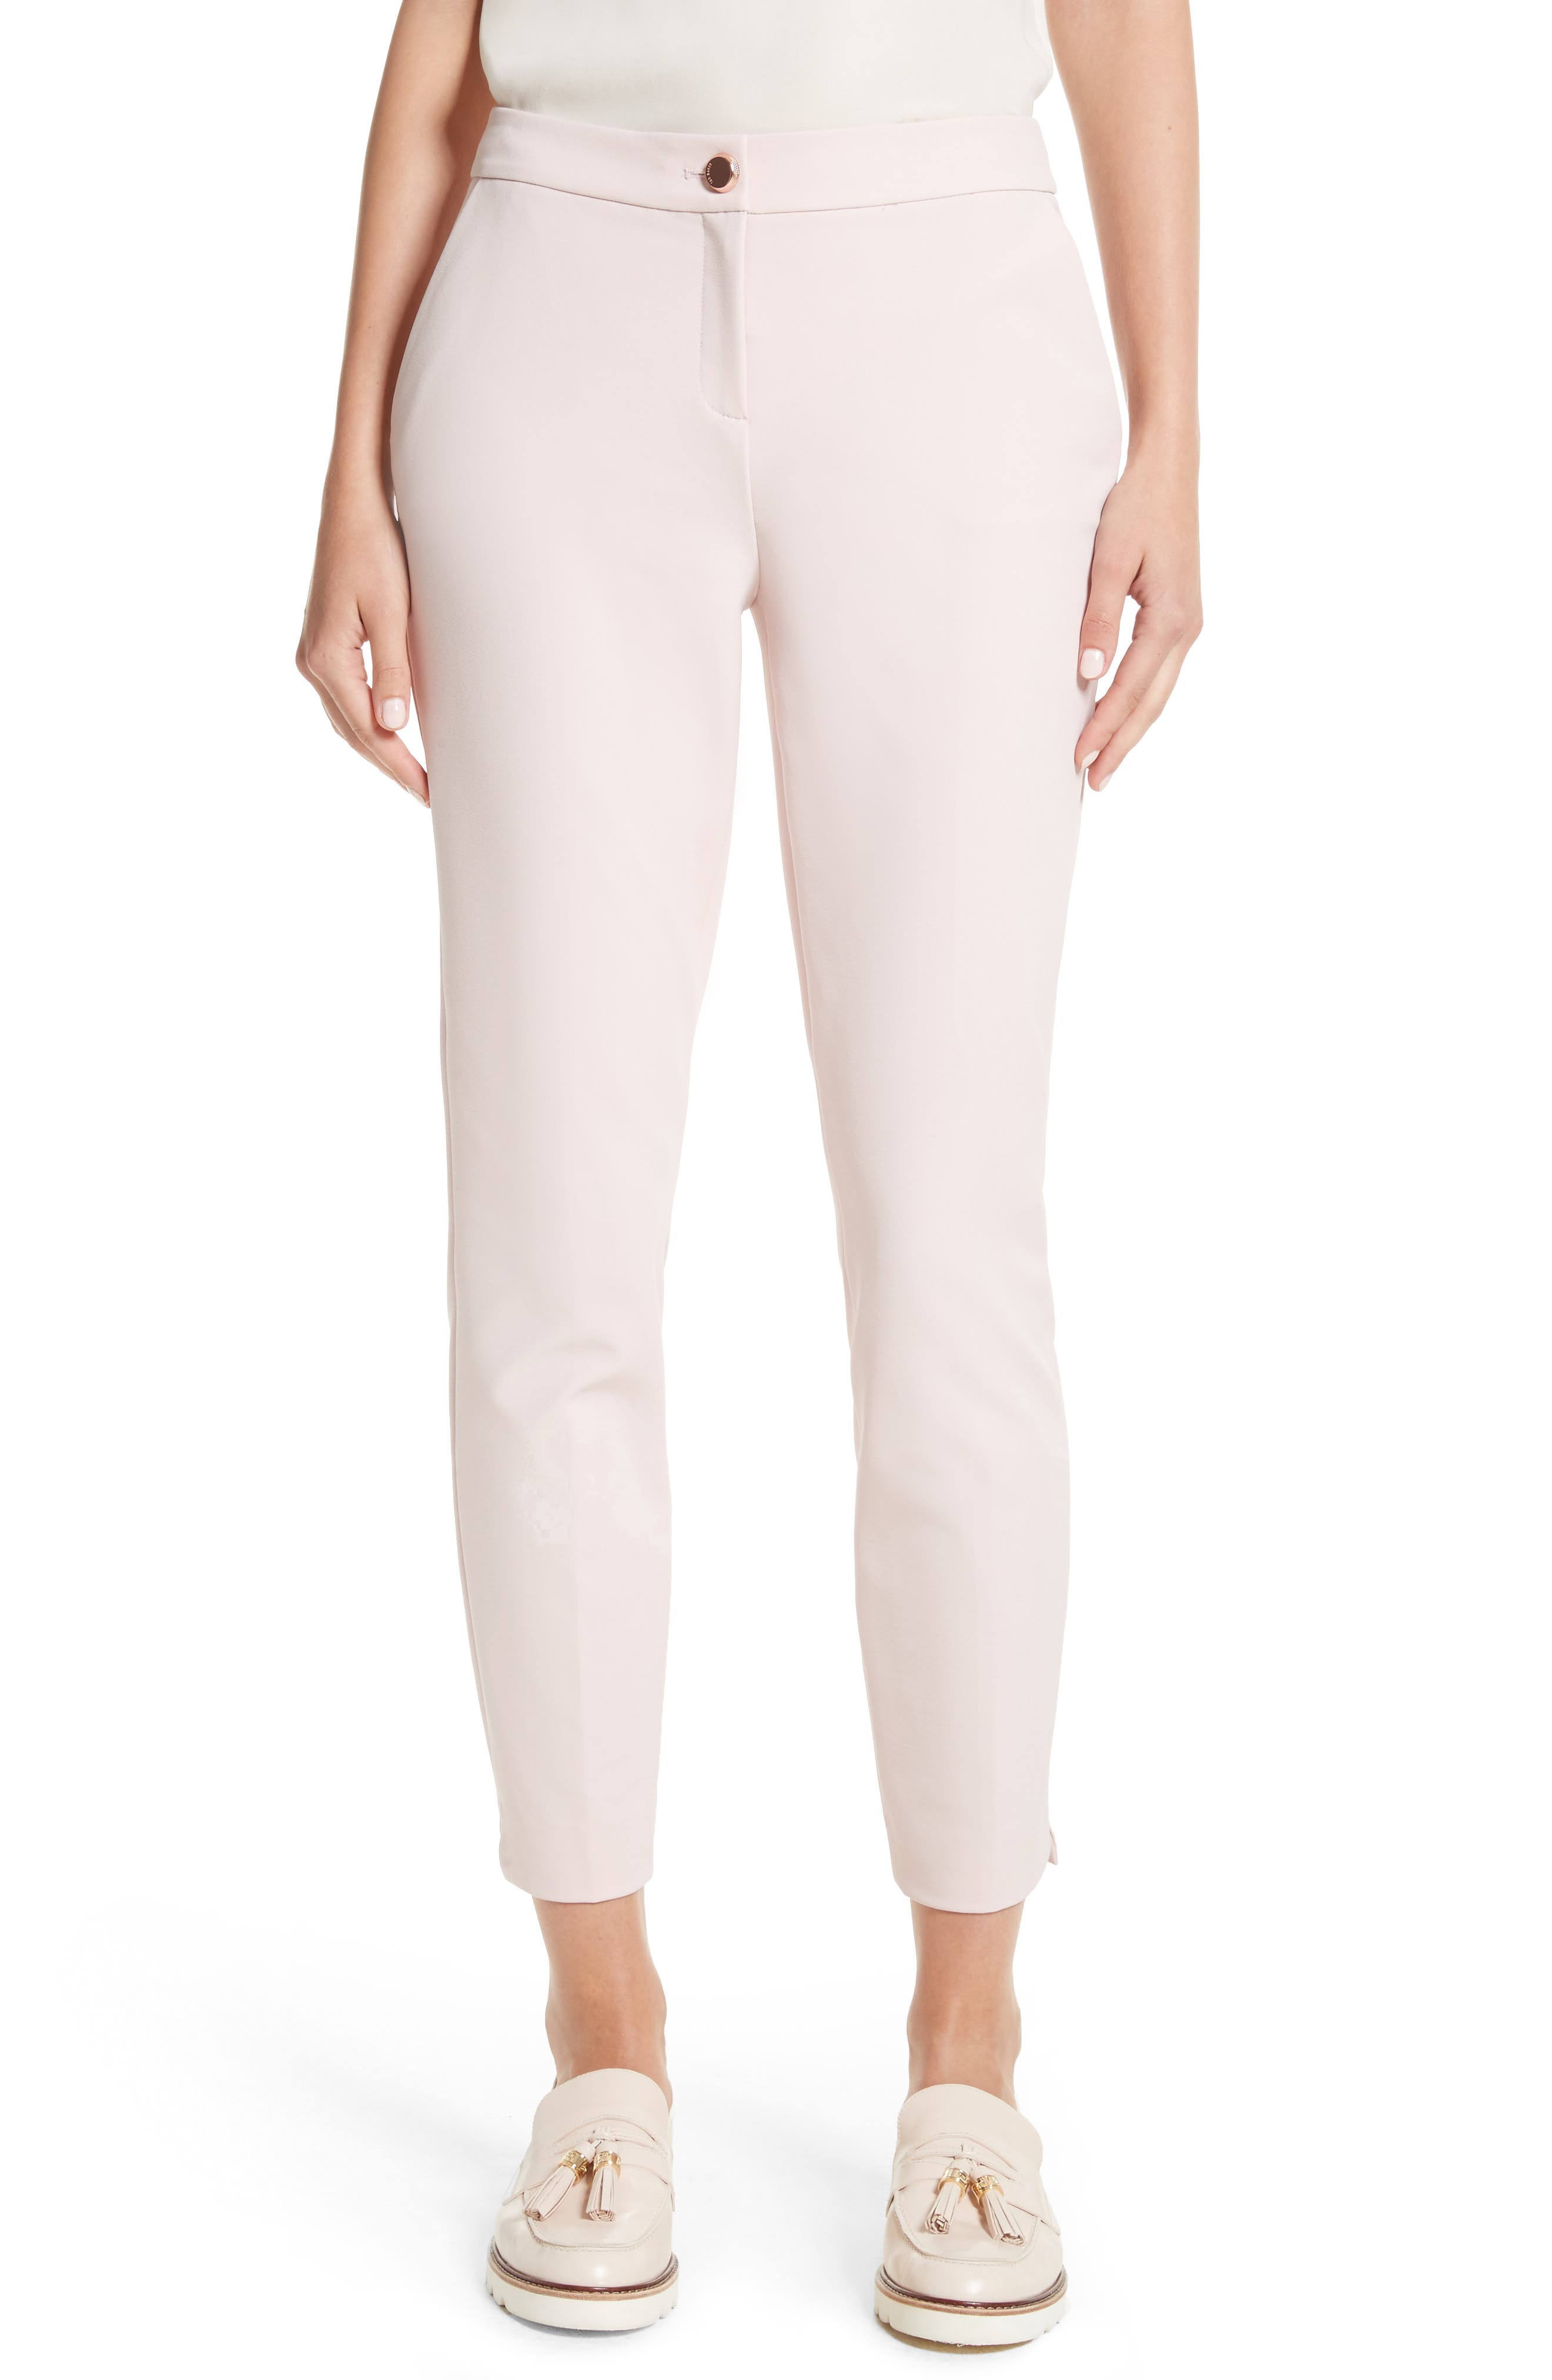 Suria Tailored Ankle Grazer Trousers,                             Main thumbnail 1, color,                             680